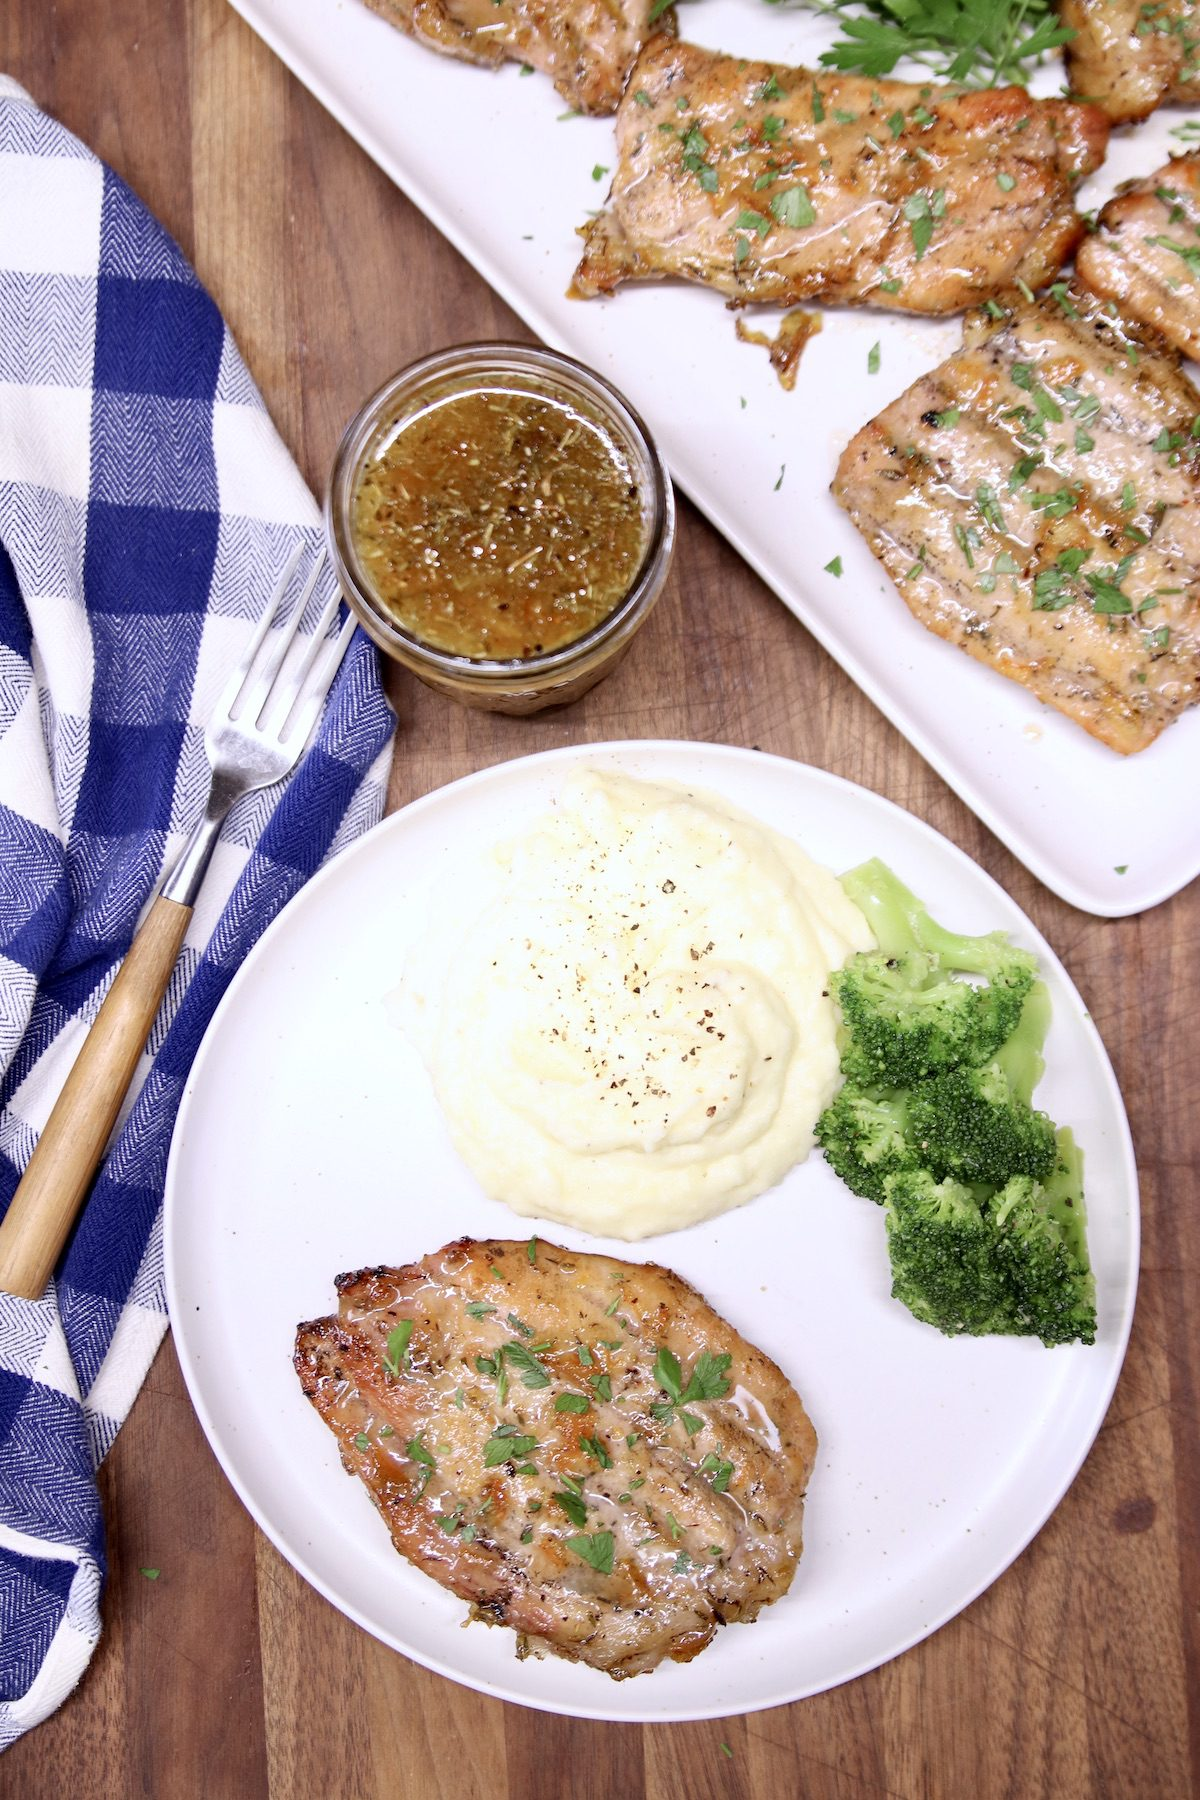 pork chop on a plate with mashed potatoes and broccoli